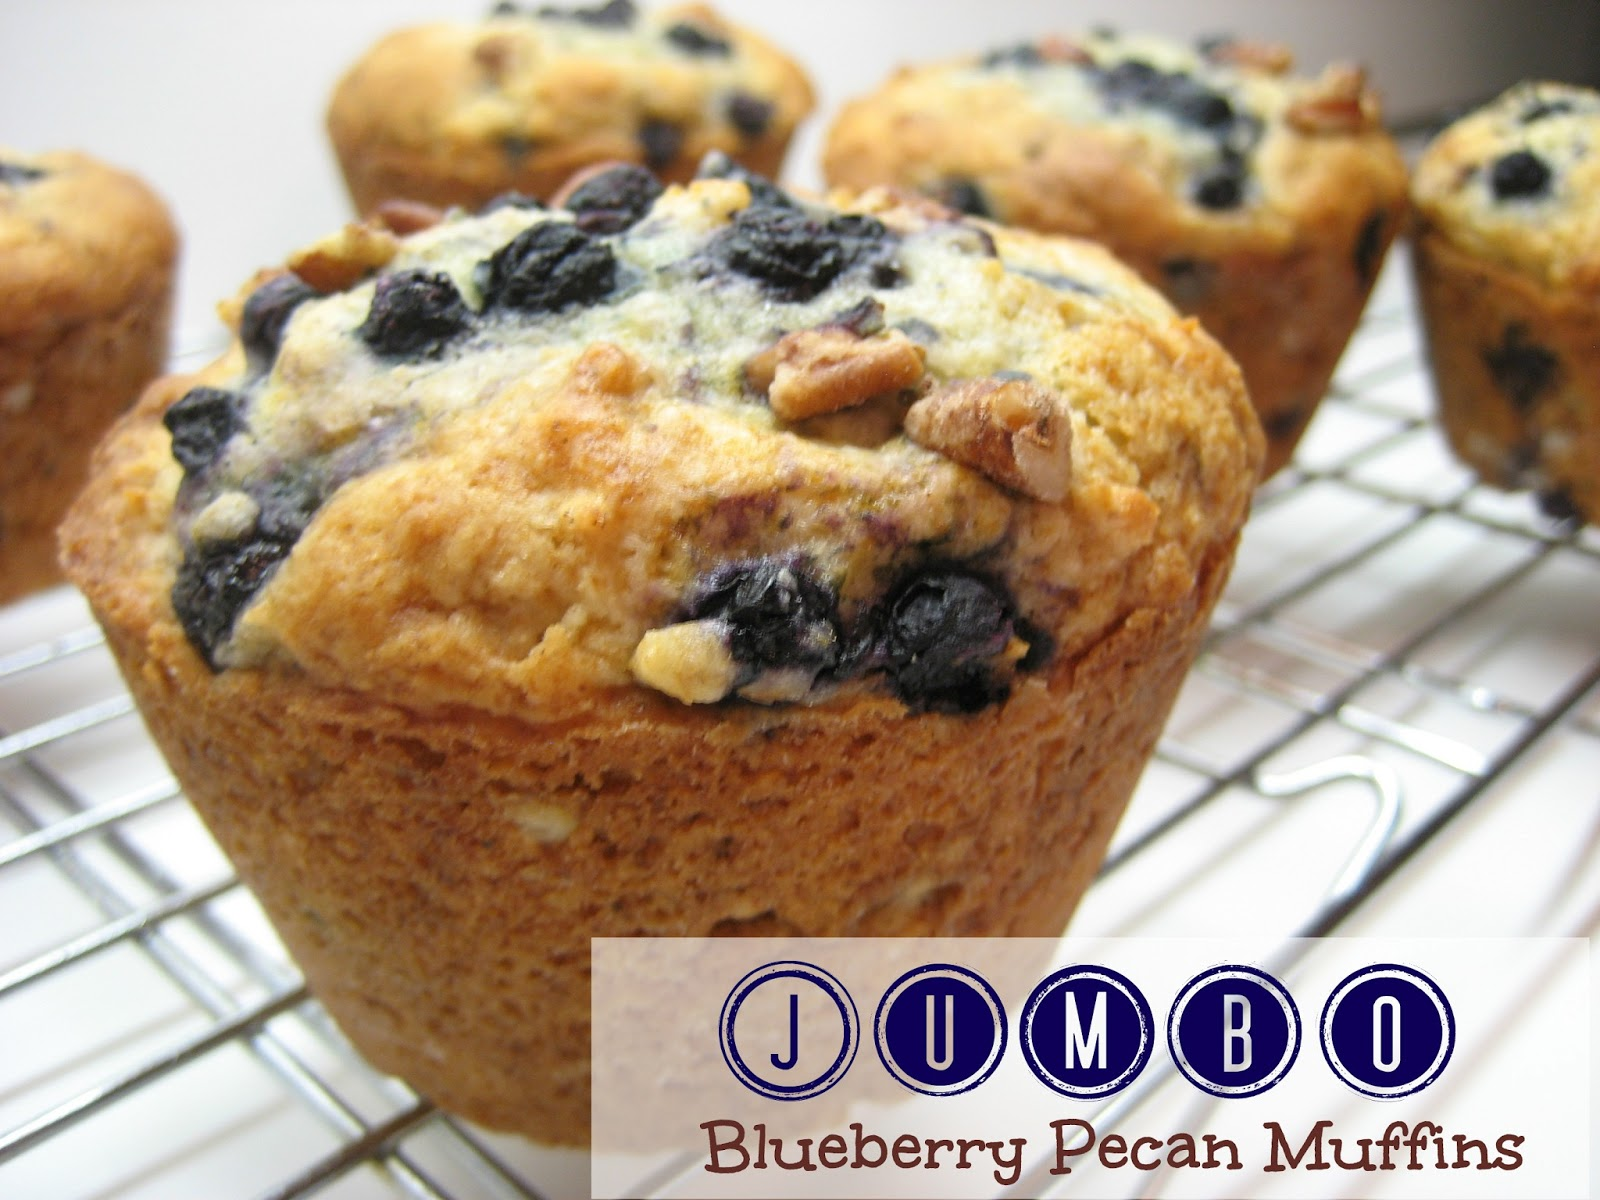 ... muffins coconut blueberry muffins blueberry corn muffins whole wheat